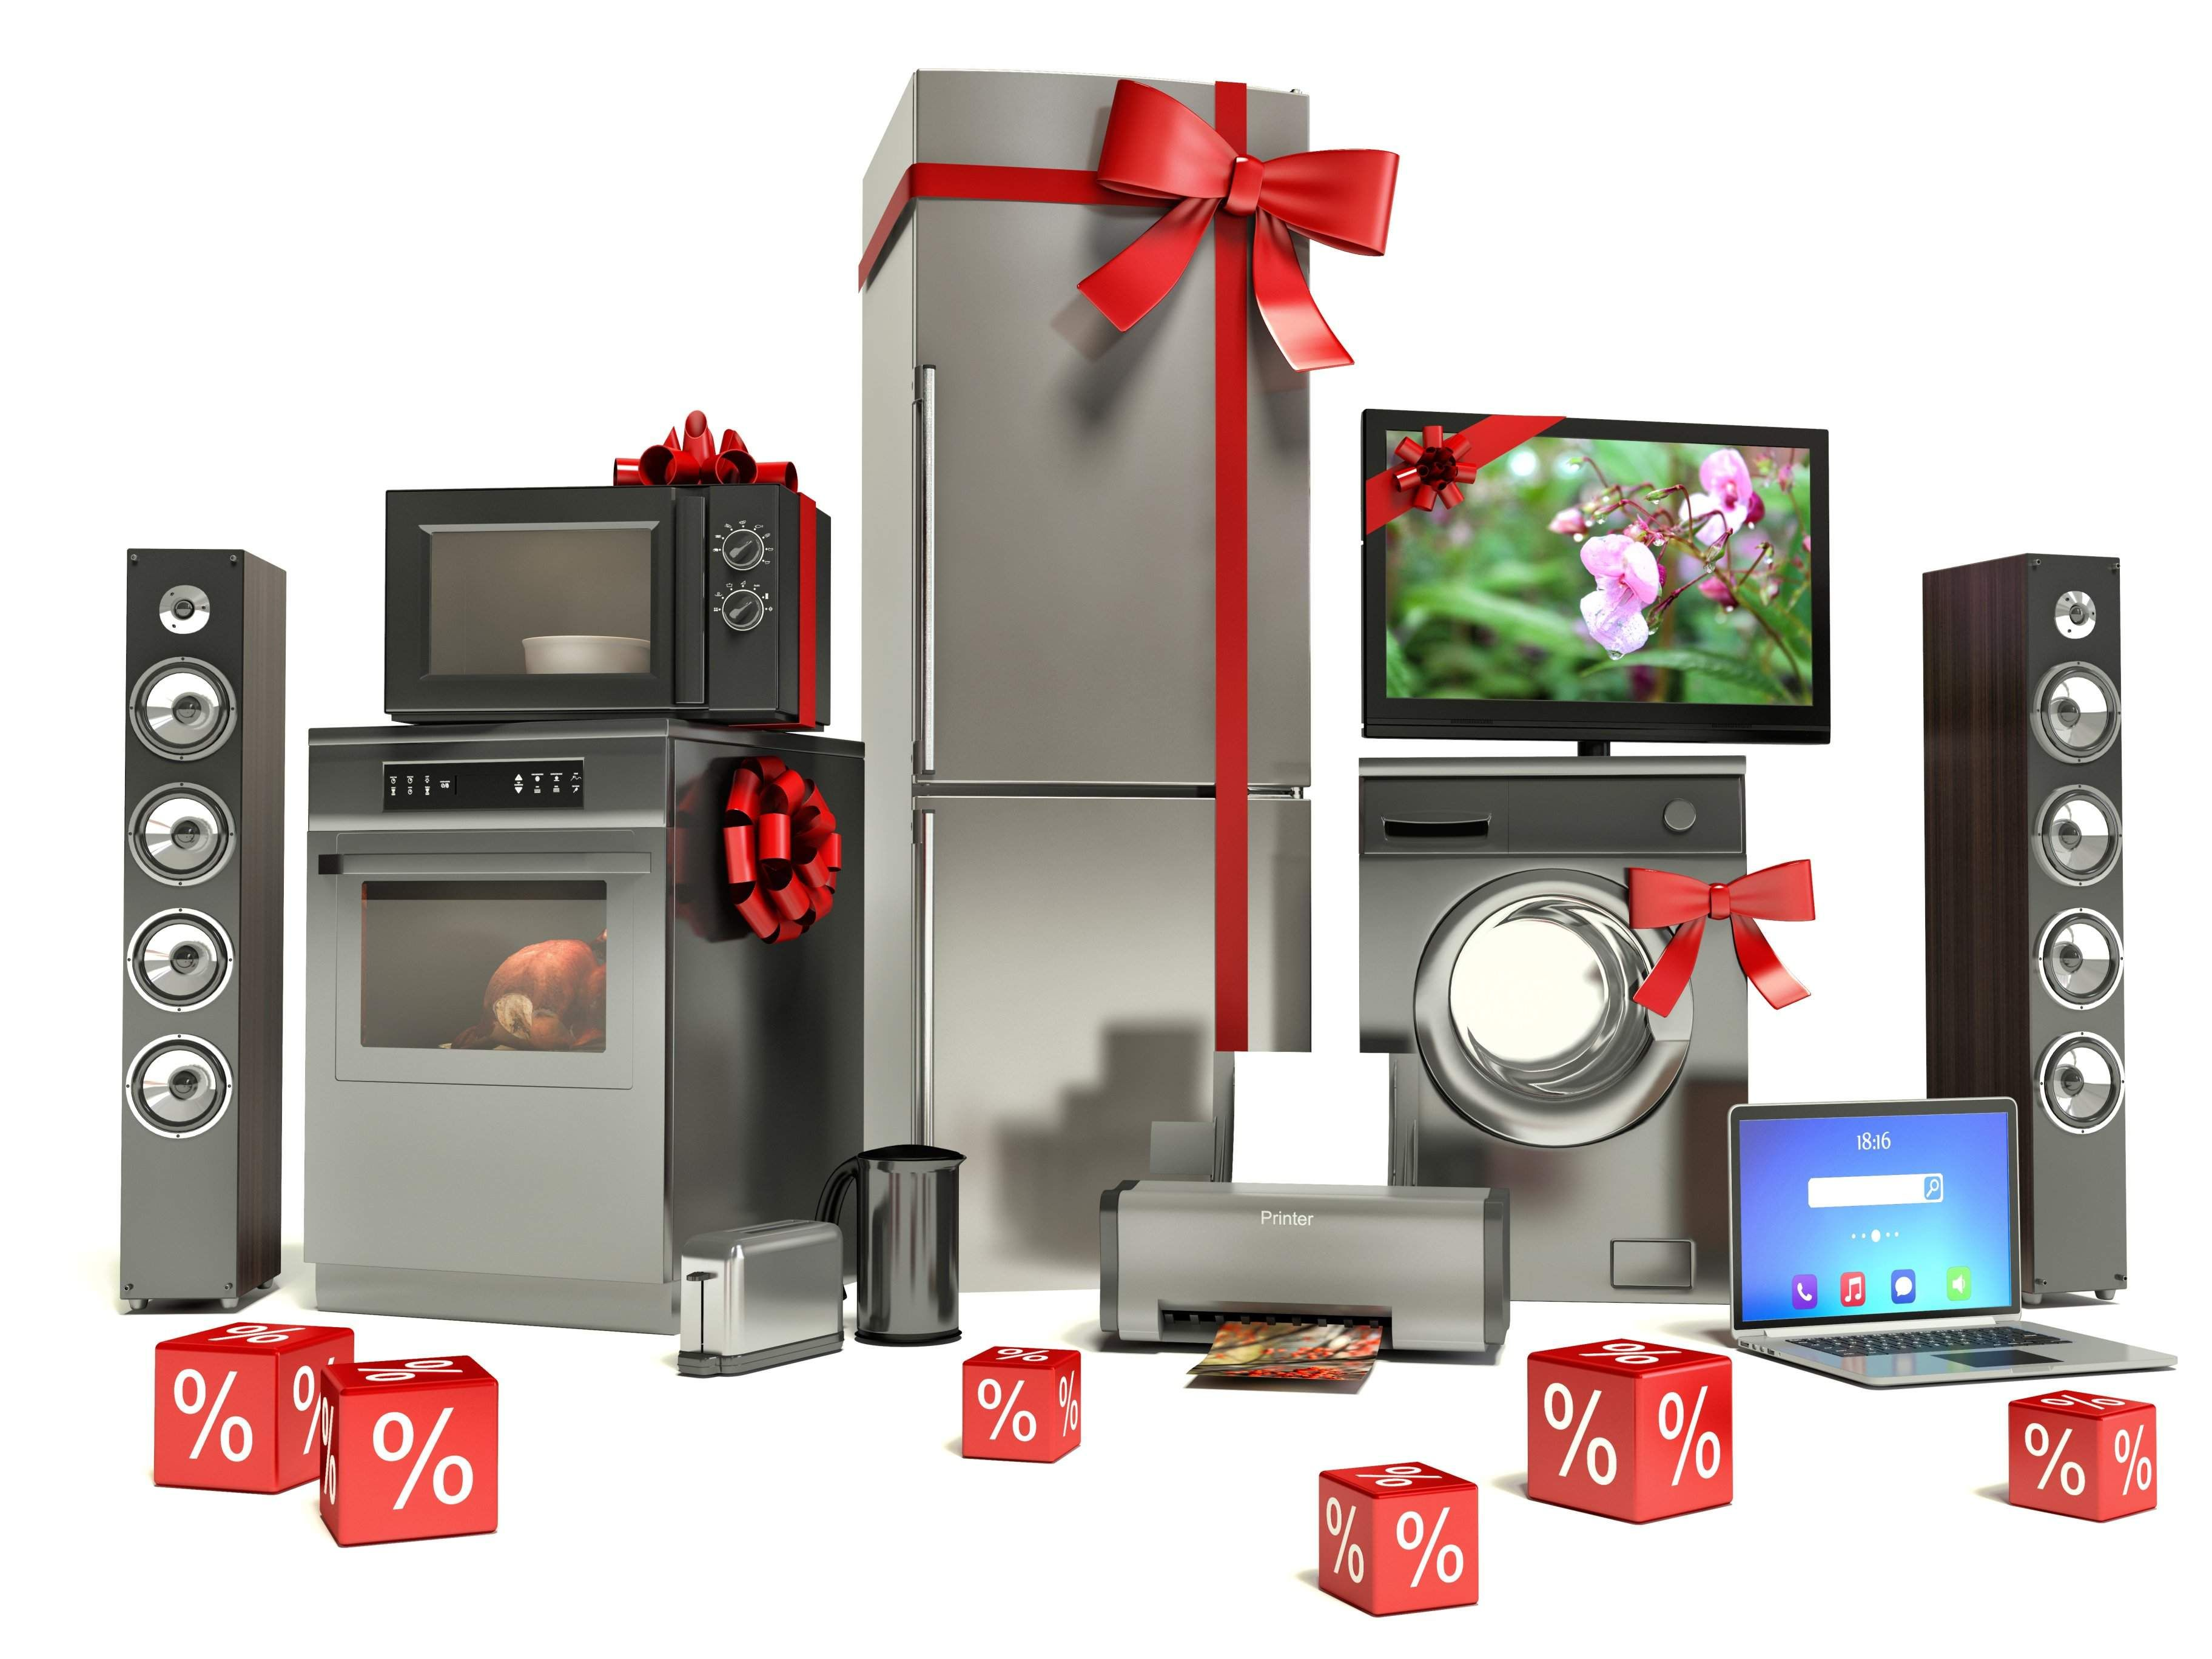 In Home Electronics Ramadan Special Aed 50 Off On Your Shopping At Wadi Ramdan